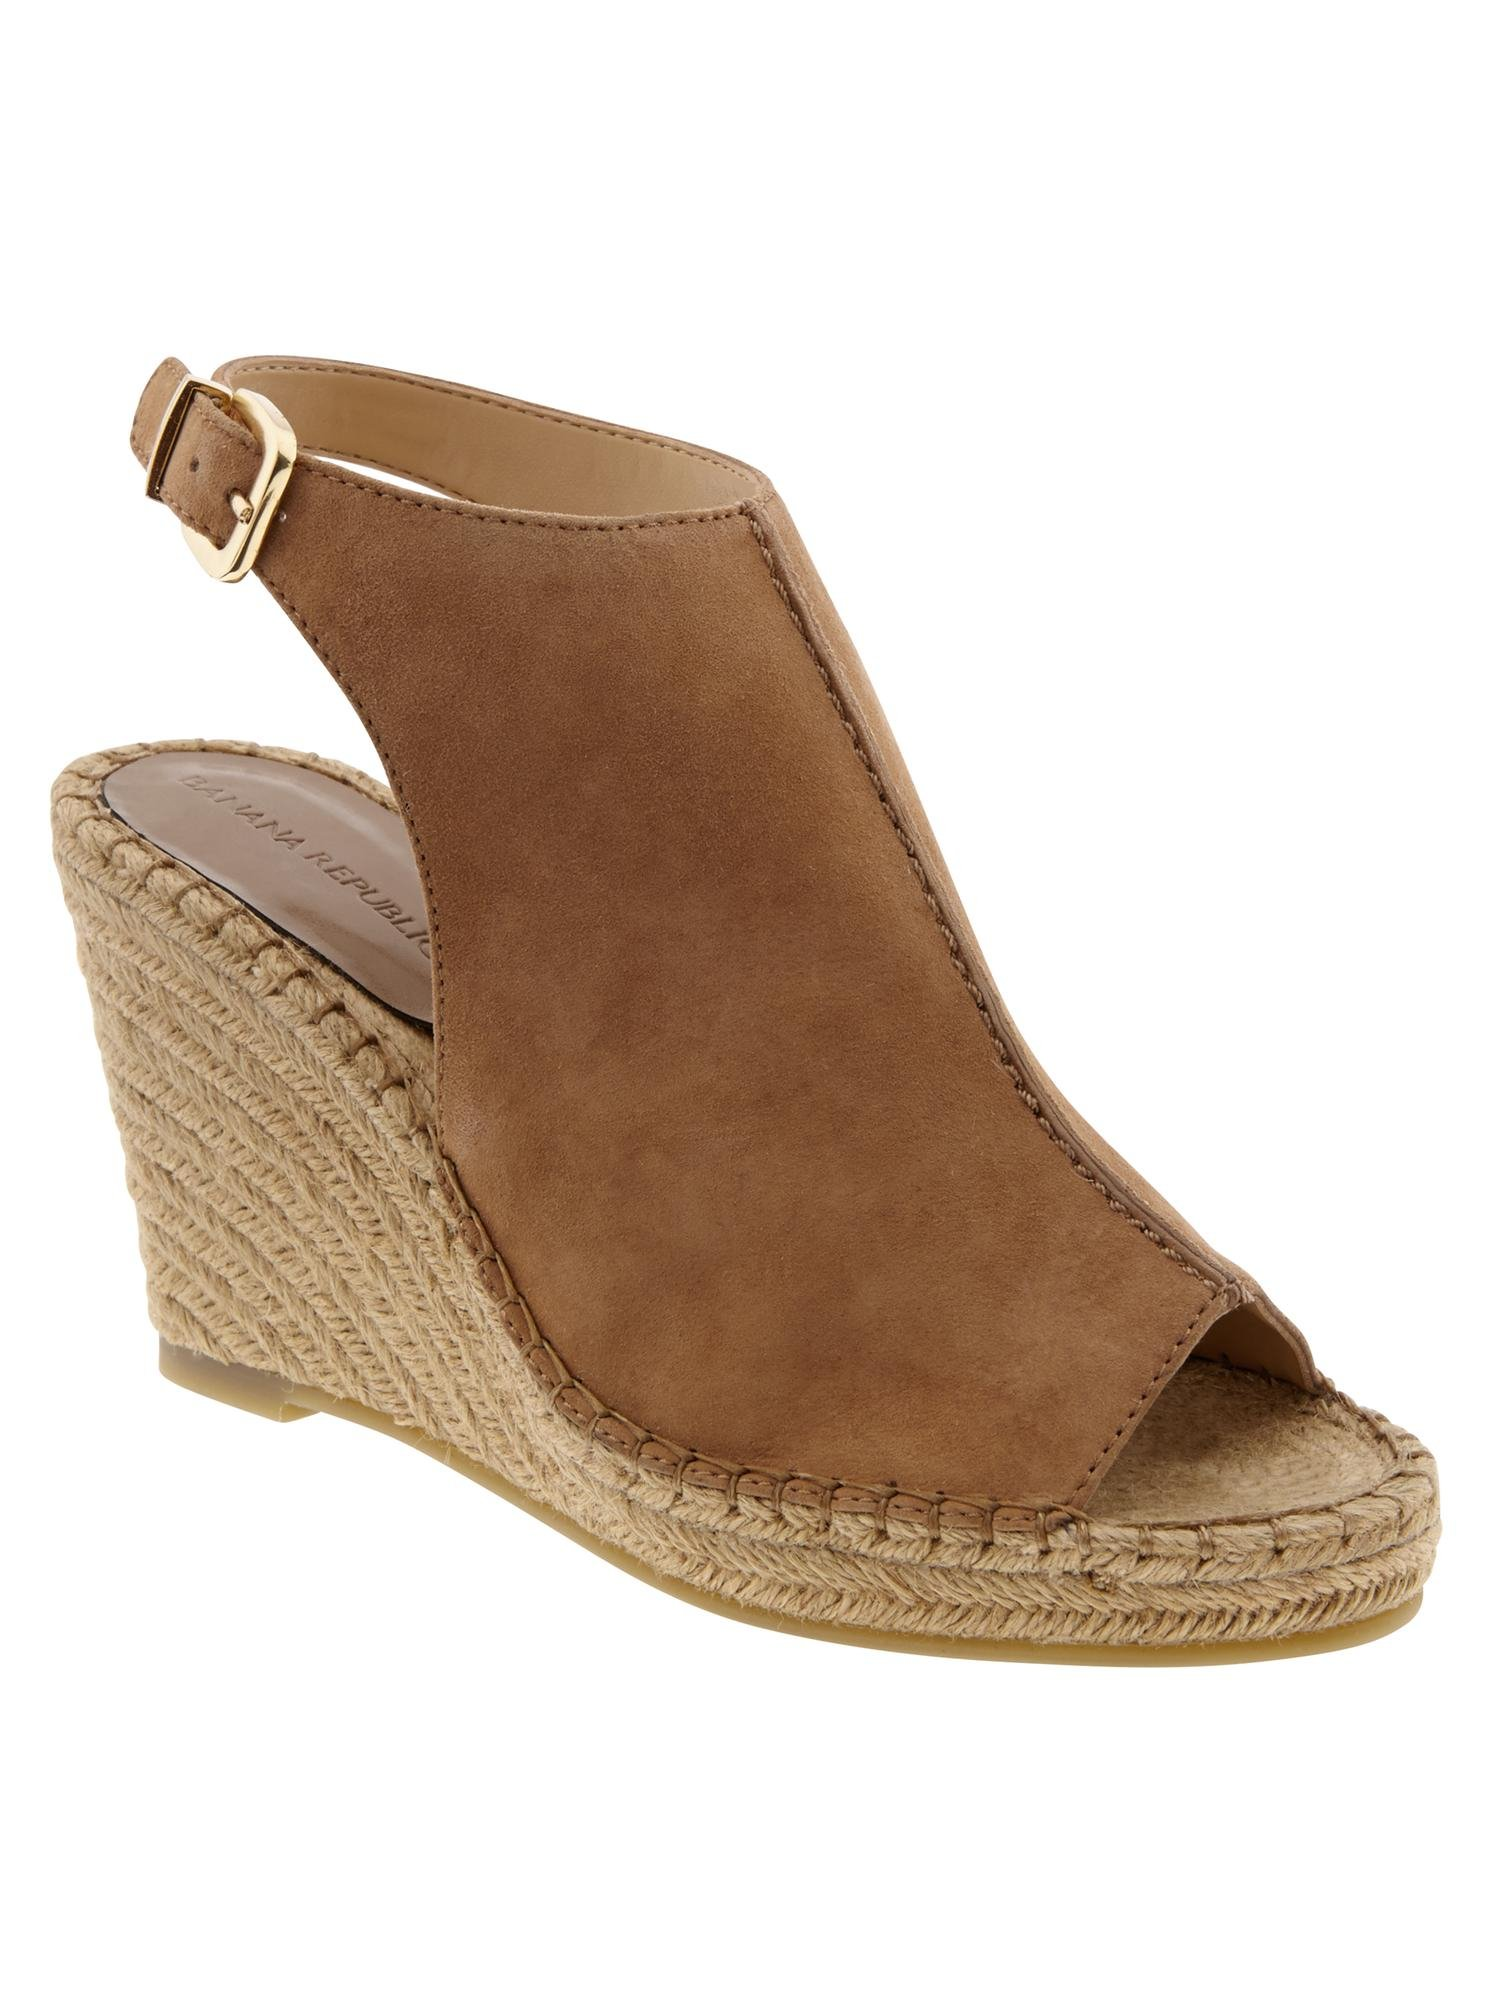 4c2e72c765a Lyst - Banana Republic Noemie Espadrille Wedge in Brown